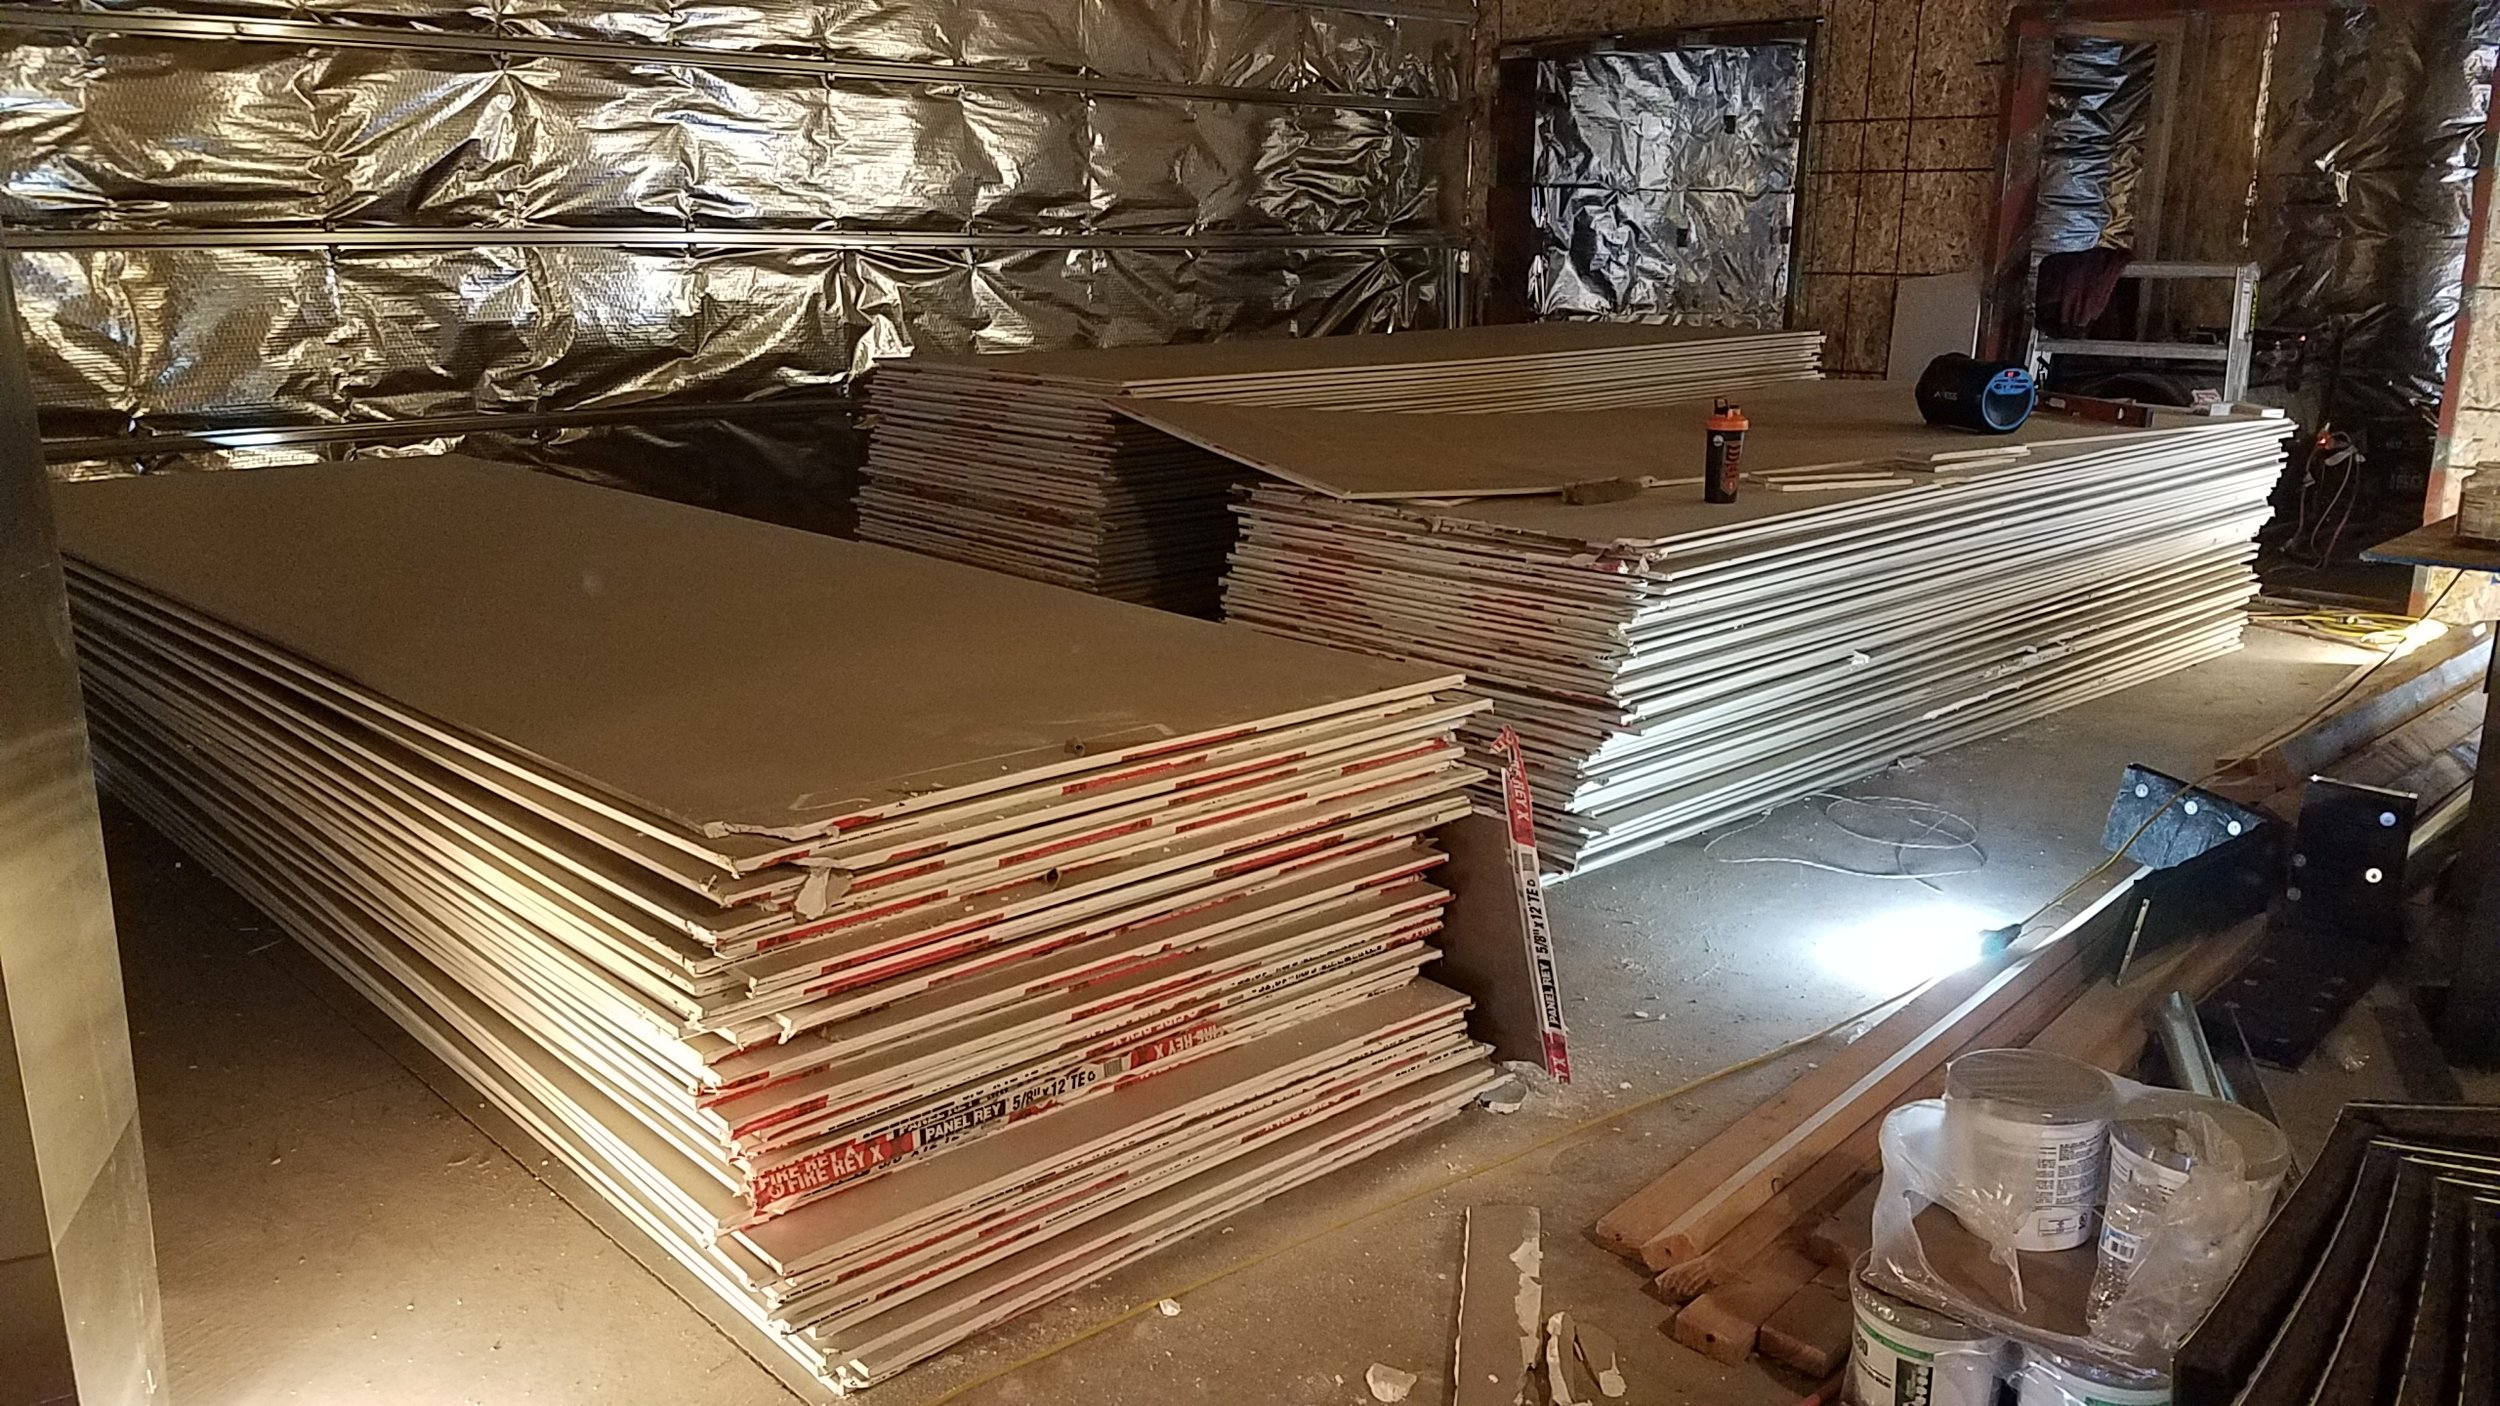 Sheet rock showed up, a LOT of sheet rock. We have piles like this in most rooms of the studio and we don't even have it all yet.